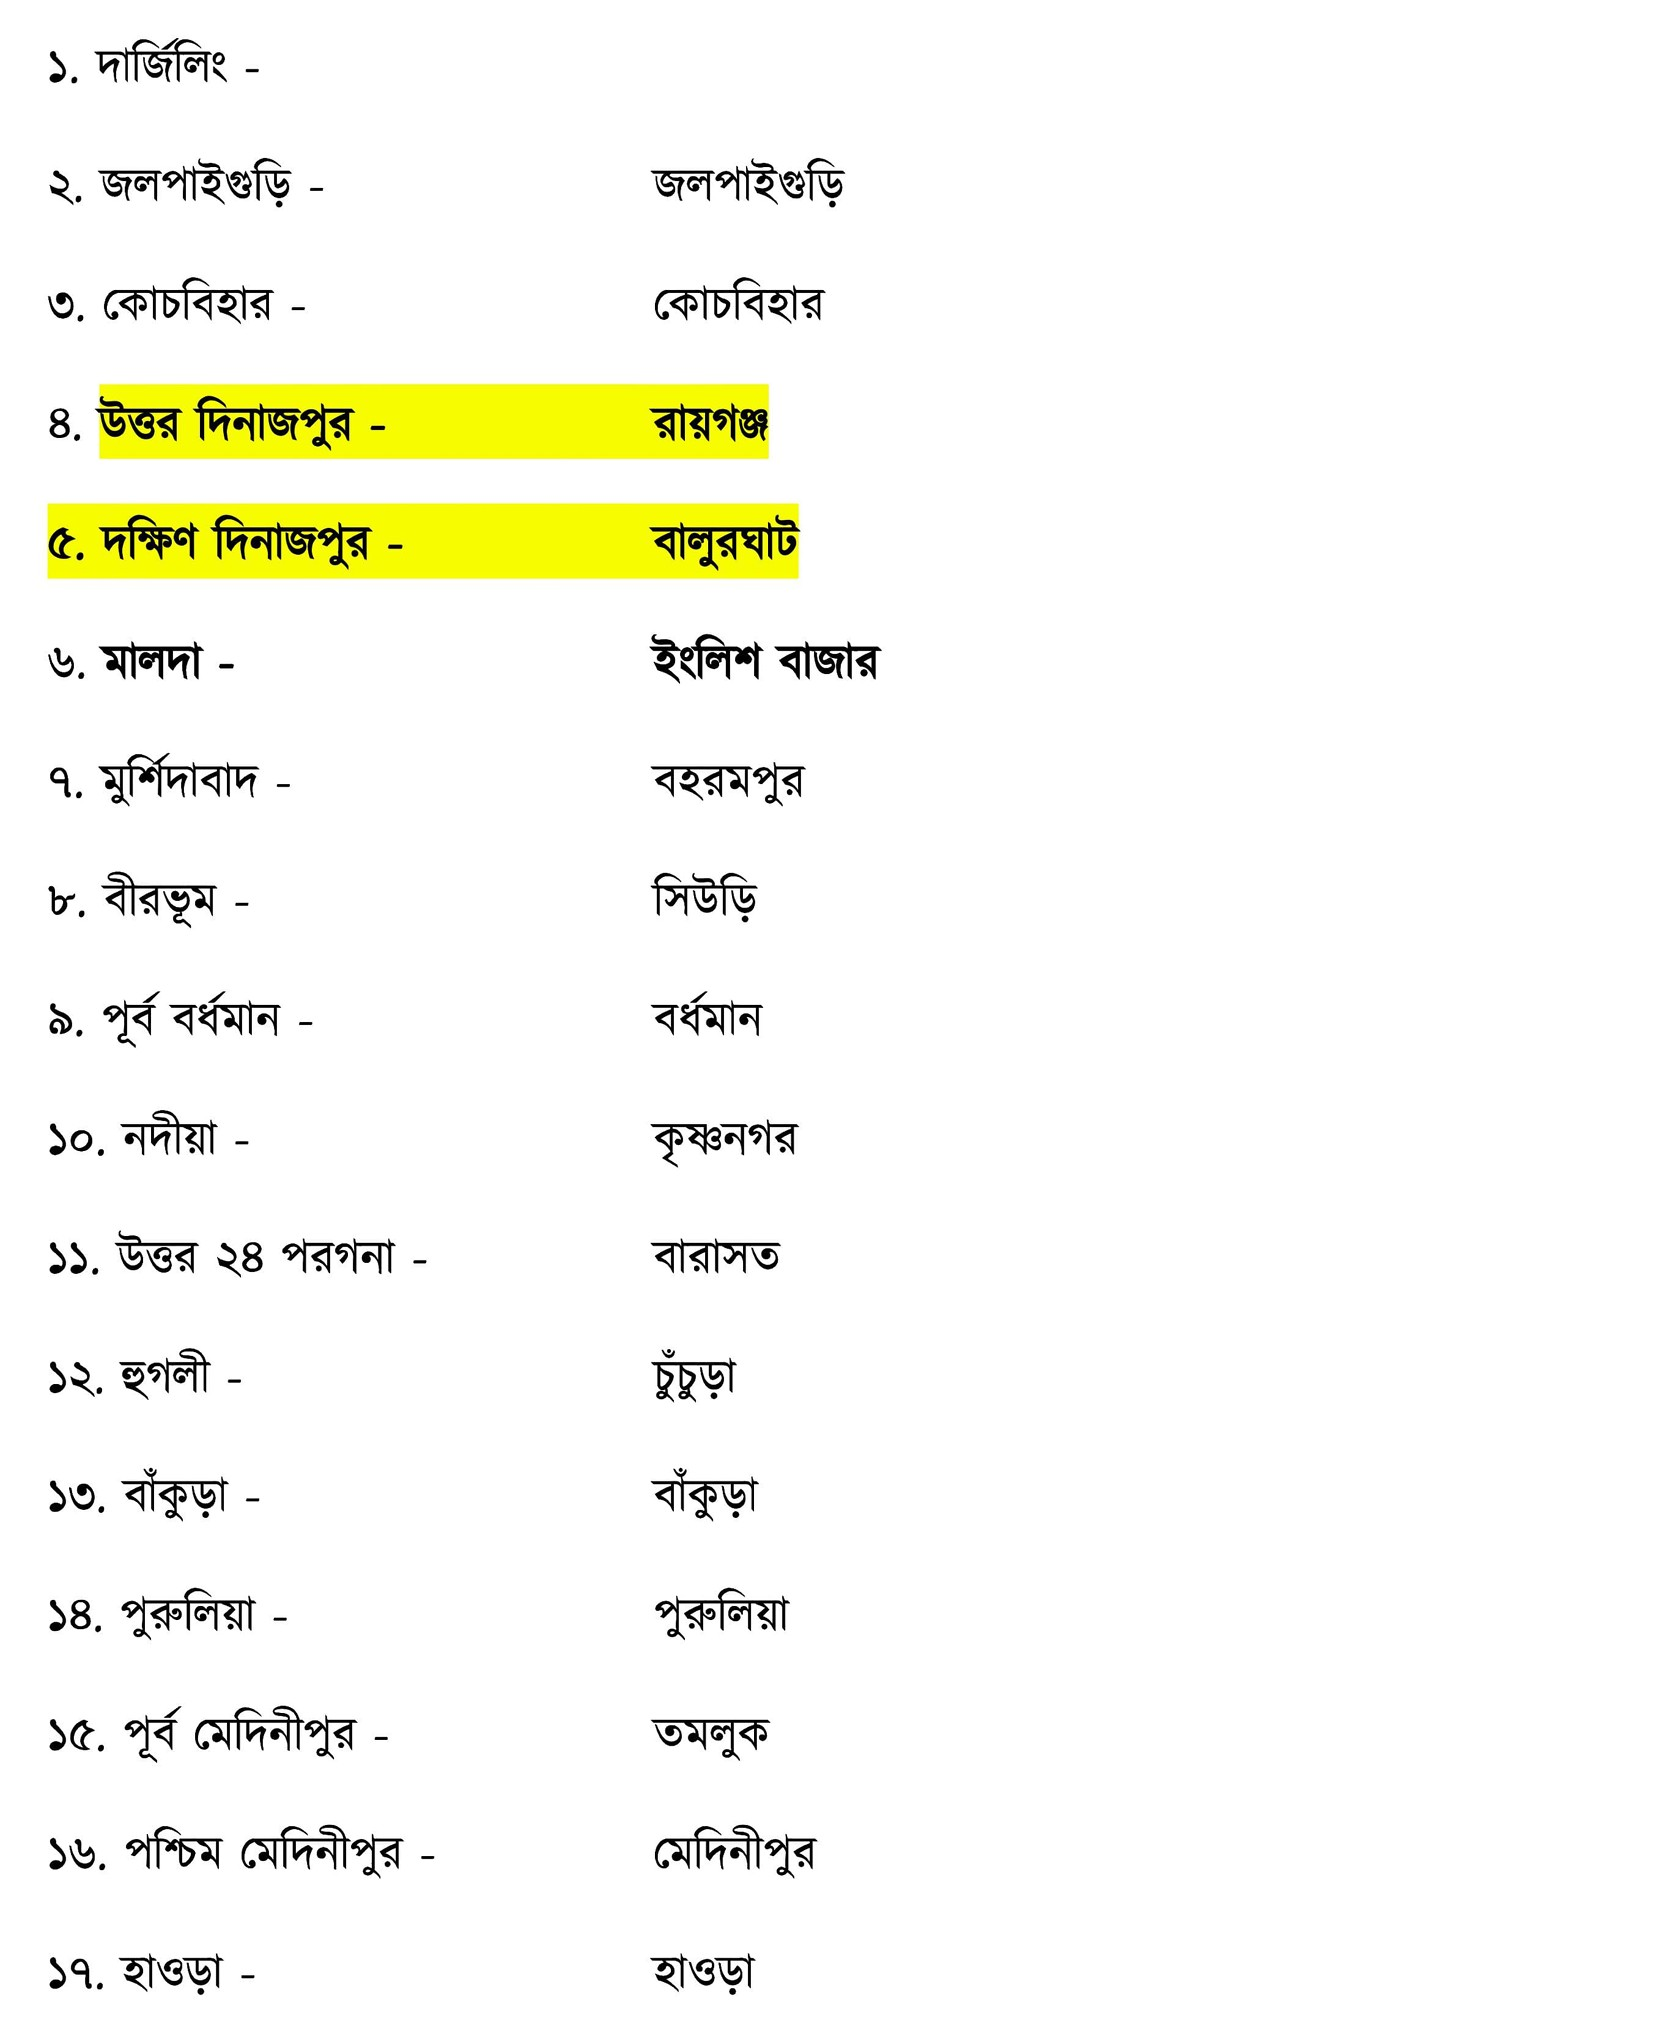 West Bengal Geography Complete Syallabus Study Material - WBCS Notebook